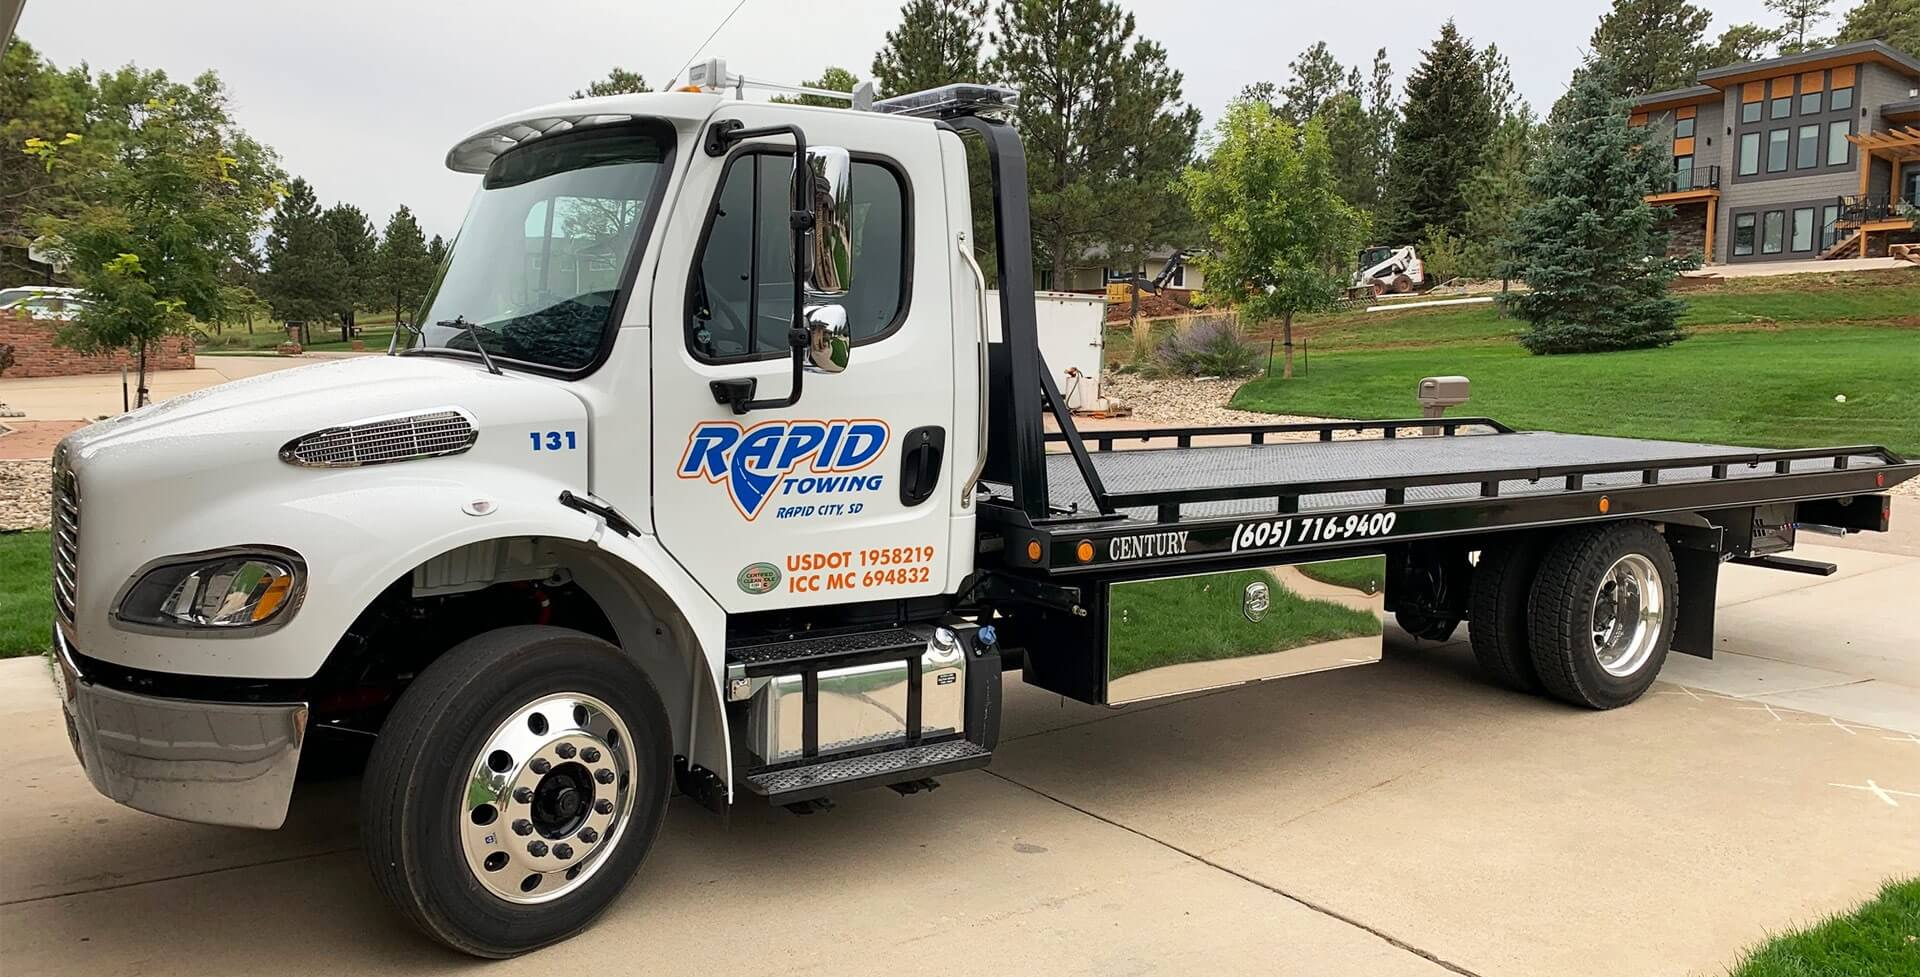 Rapid Towing